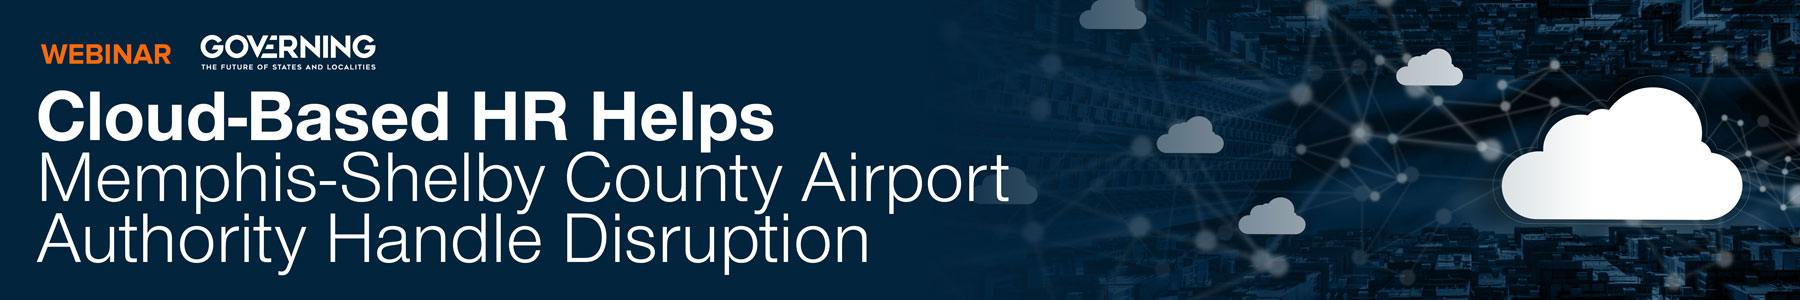 Cloud-Based HR Helps Memphis-Shelby County Airport Authority Handle Disruption